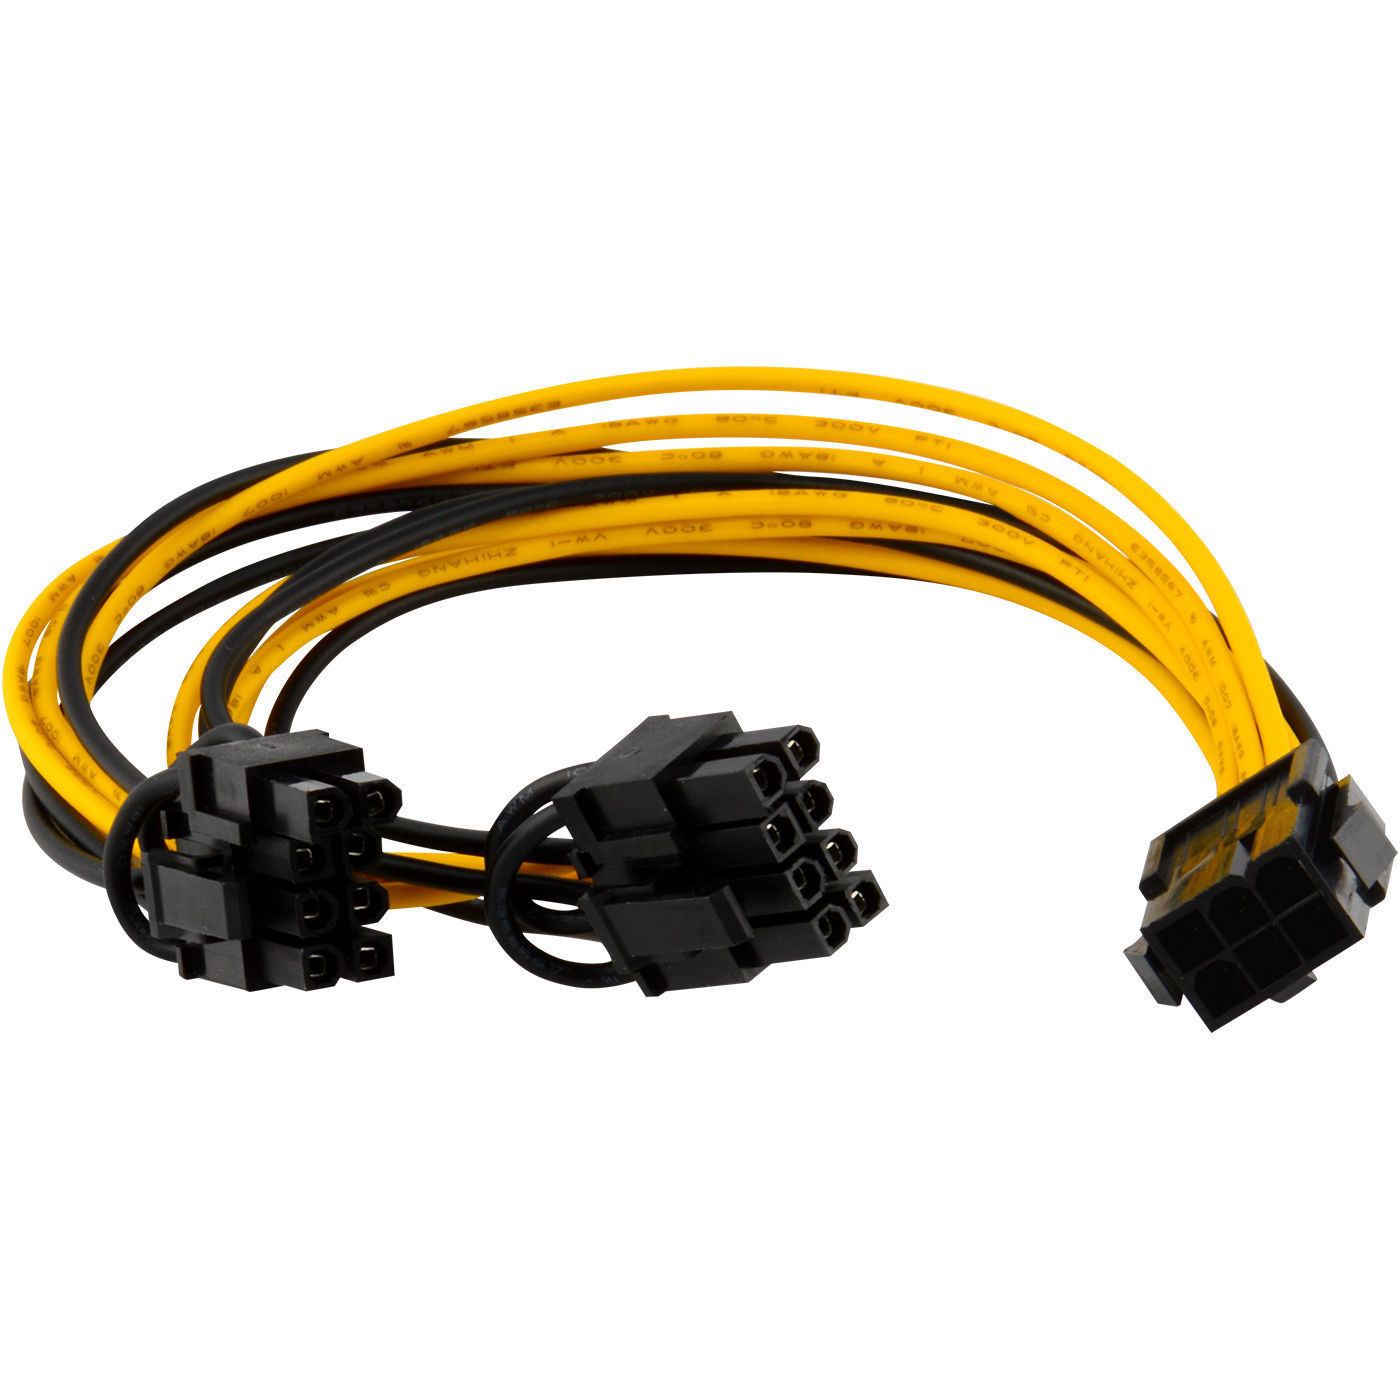 6 pin PCIe to dual 8(6+2)pin splitter cable 20 cm for powering e